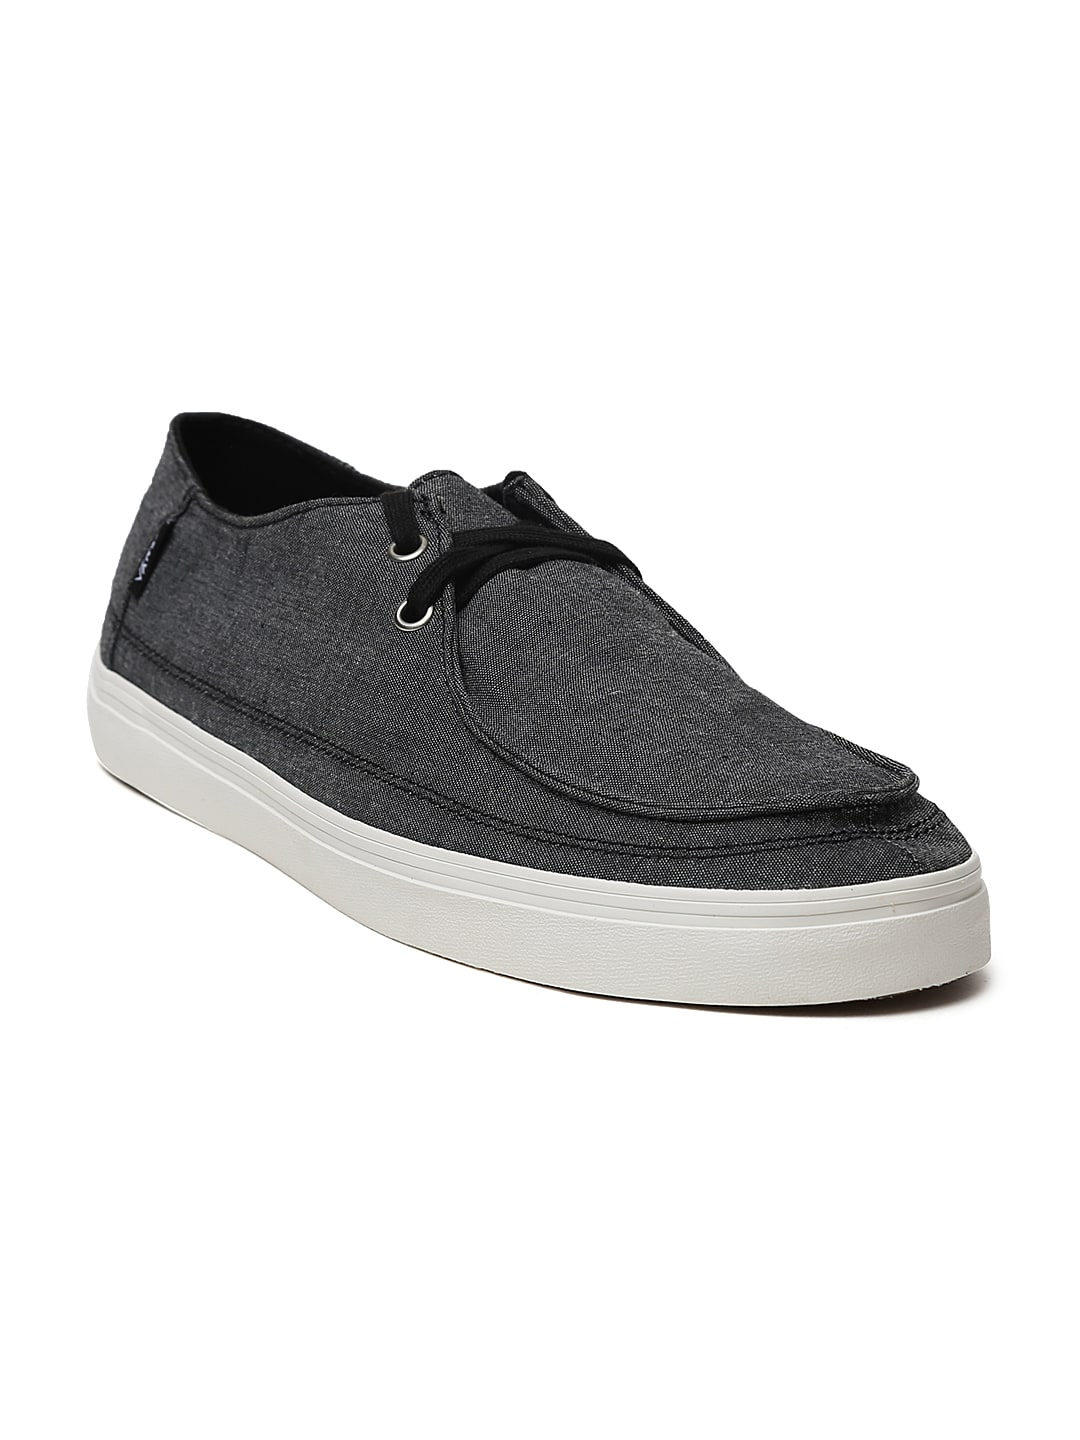 478cdb76c43cd9 Vans Casual Shoes - Buy Vans Casual Shoes Online in India